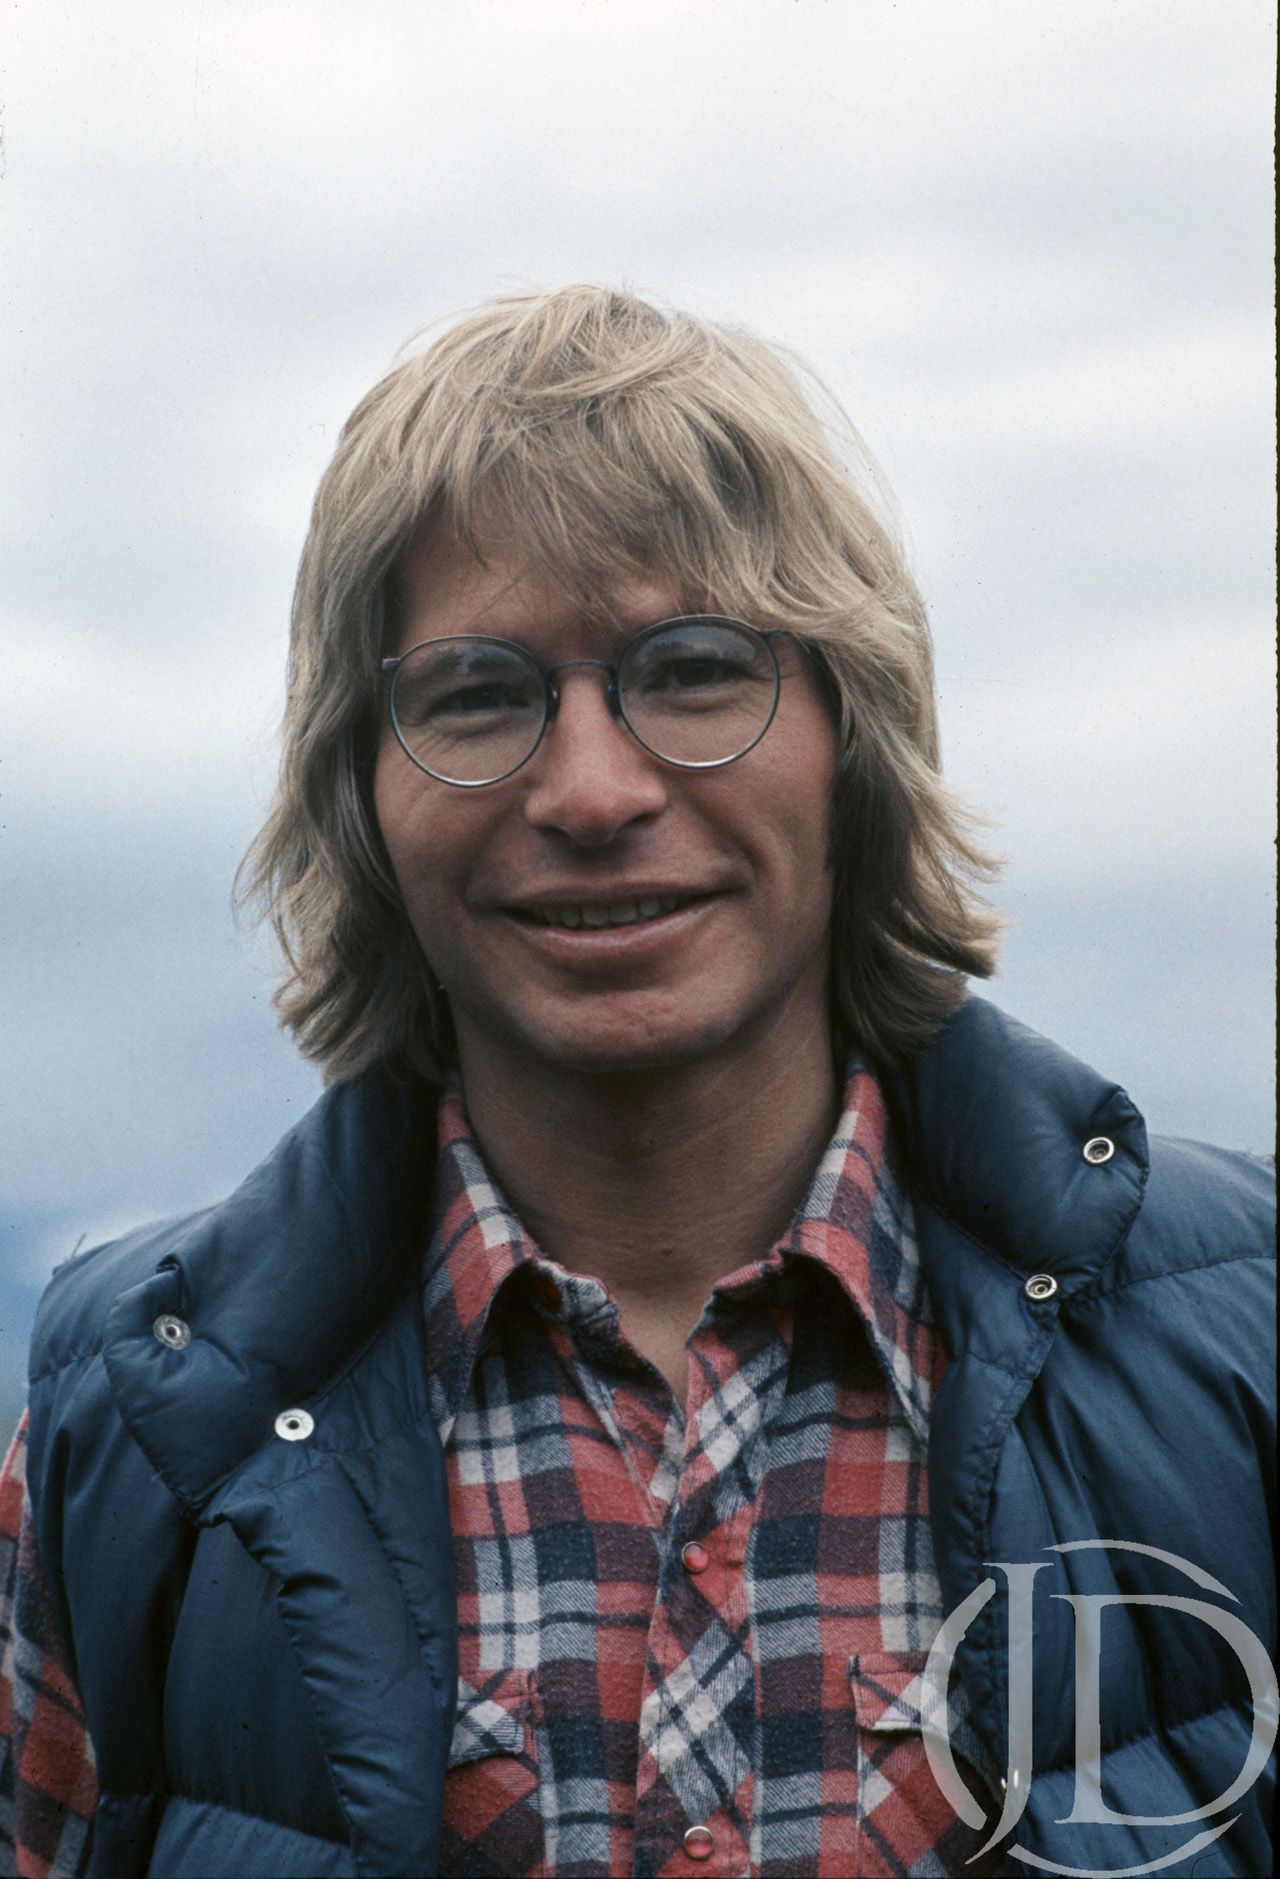 Photos - John Denver | John denver music, John denver pictures ...